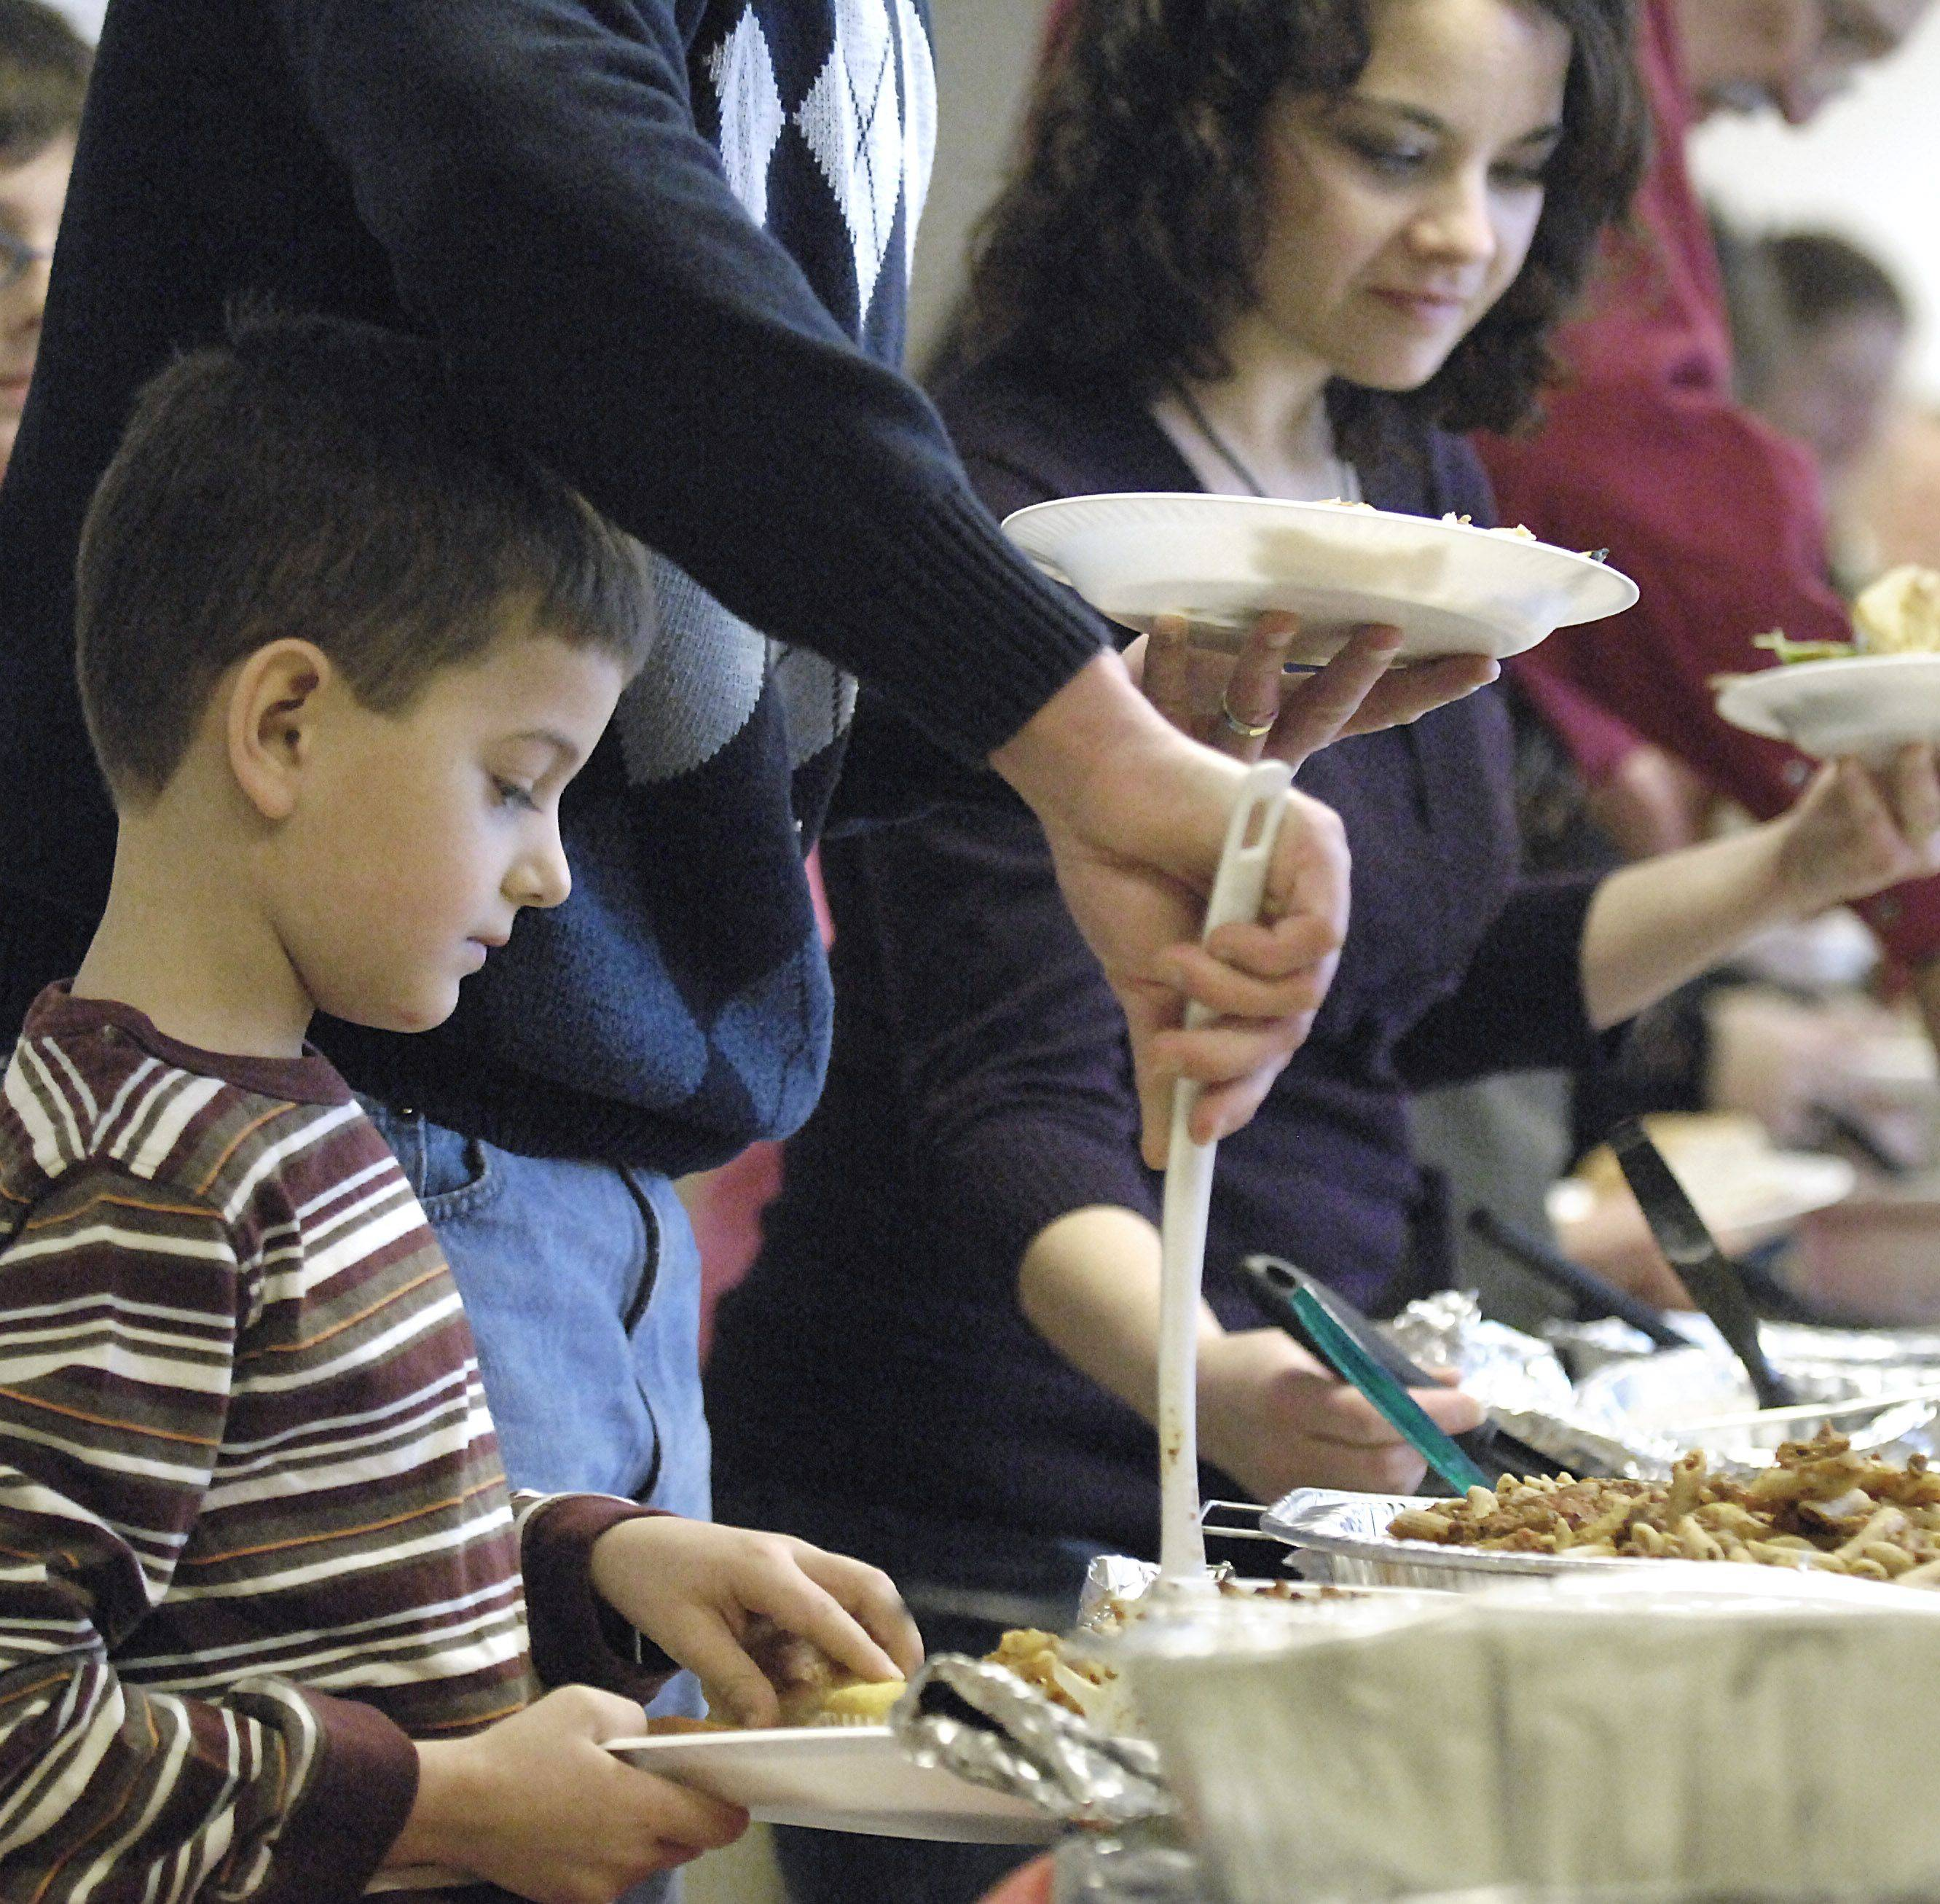 Cole Hemmes, 7, of Batavia gets help from dad Kimo Hemmes while filling his plate at the annual Christmas brunch at Lazarus House in St. Charles Christmas day.